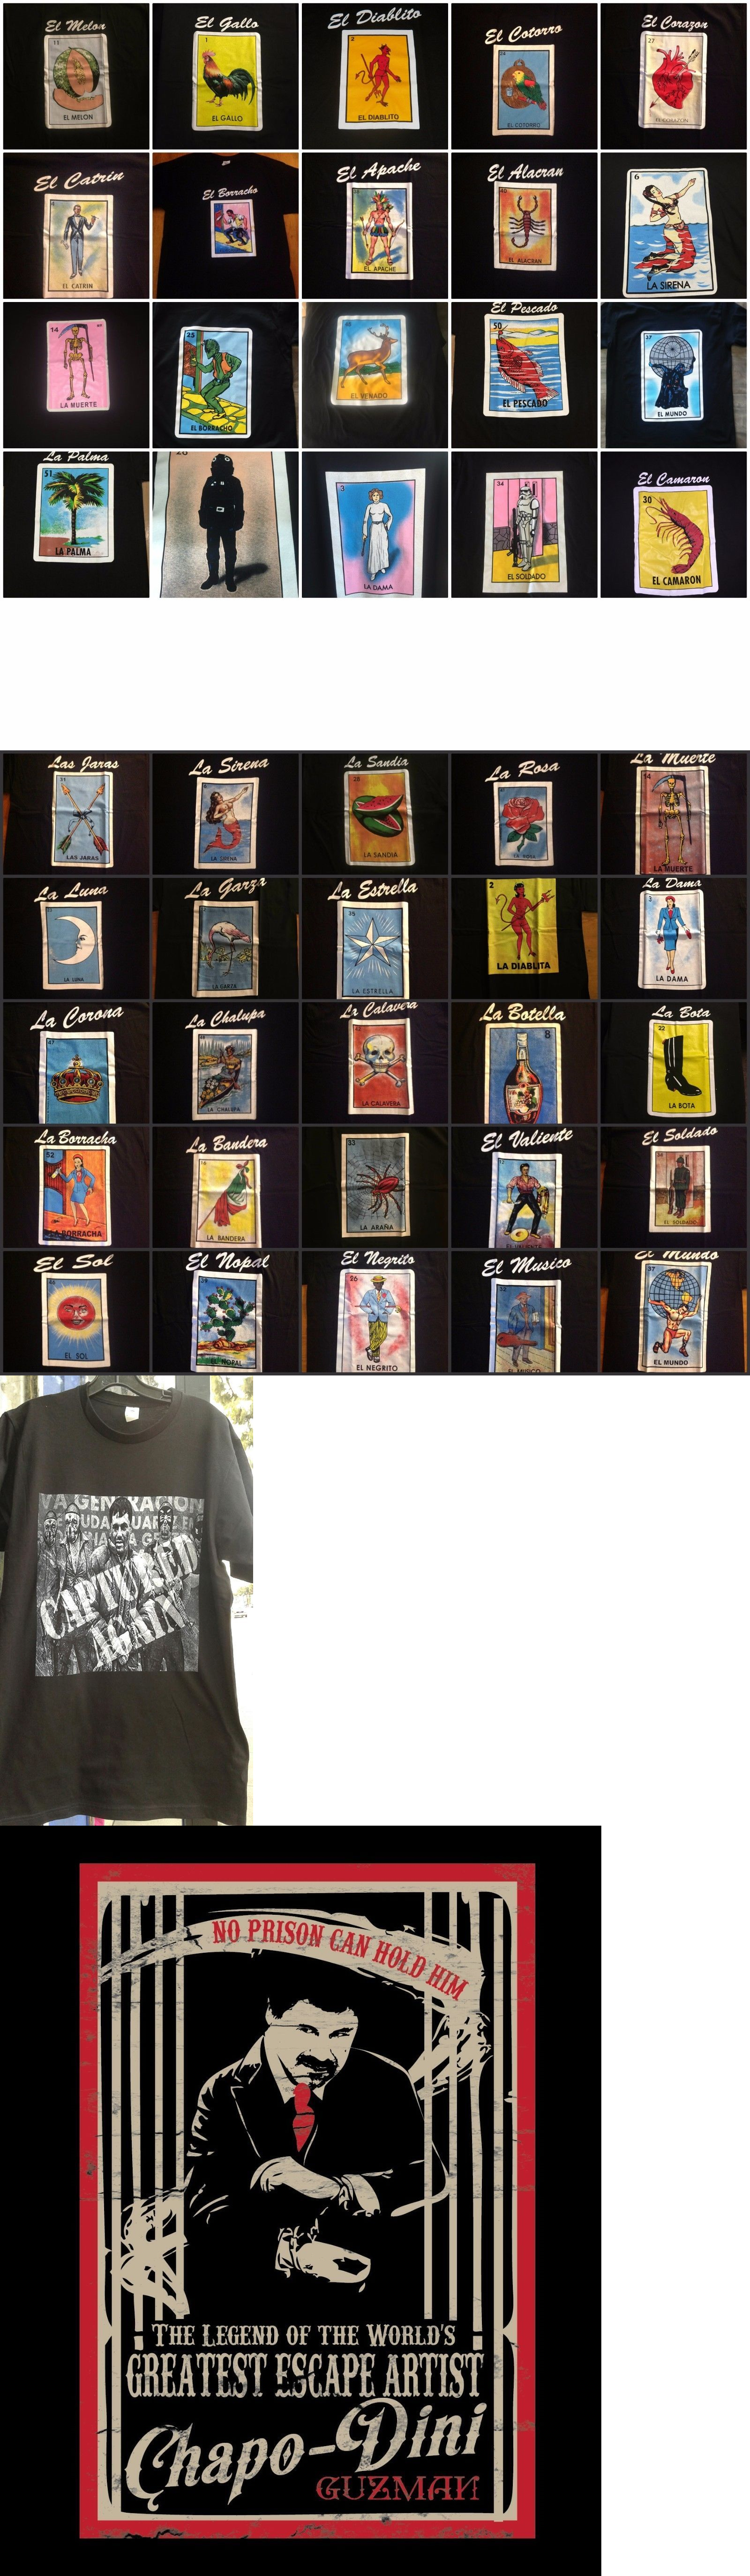 d36d7199 Shirts 50976: Wholesale Lot Of 50 El Chapo Guzman And Mexican Loteria  Mexicana Shirt - New -> BUY IT NOW ONLY: $175 on eBay!